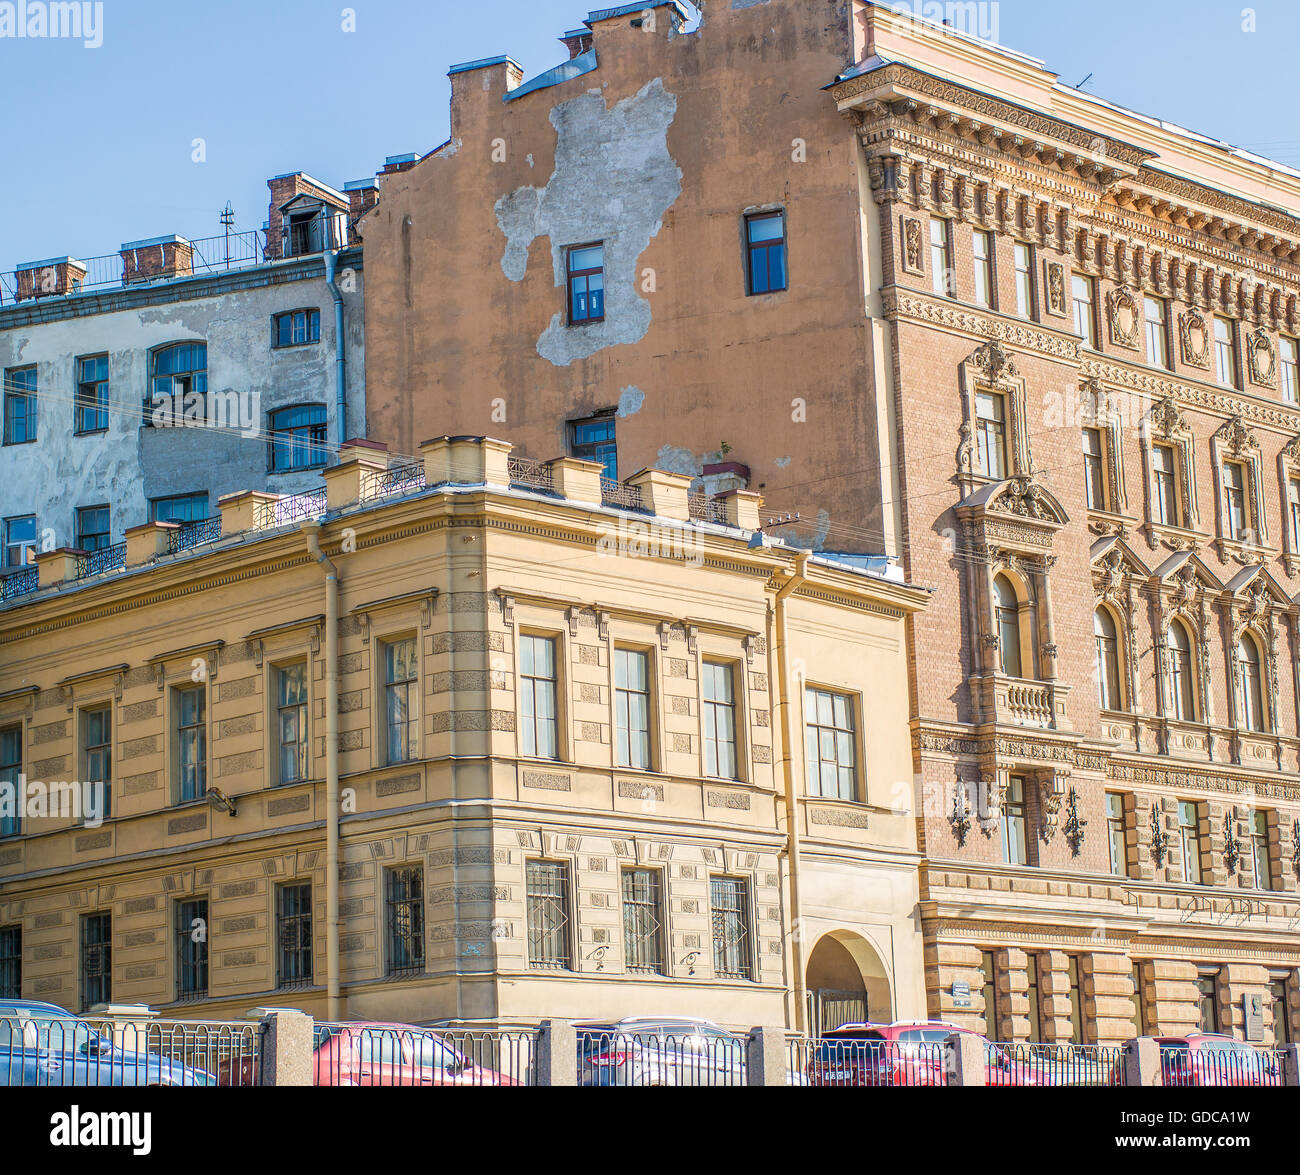 The end of the house on the waterfront in St. Petersburg Stock Photo